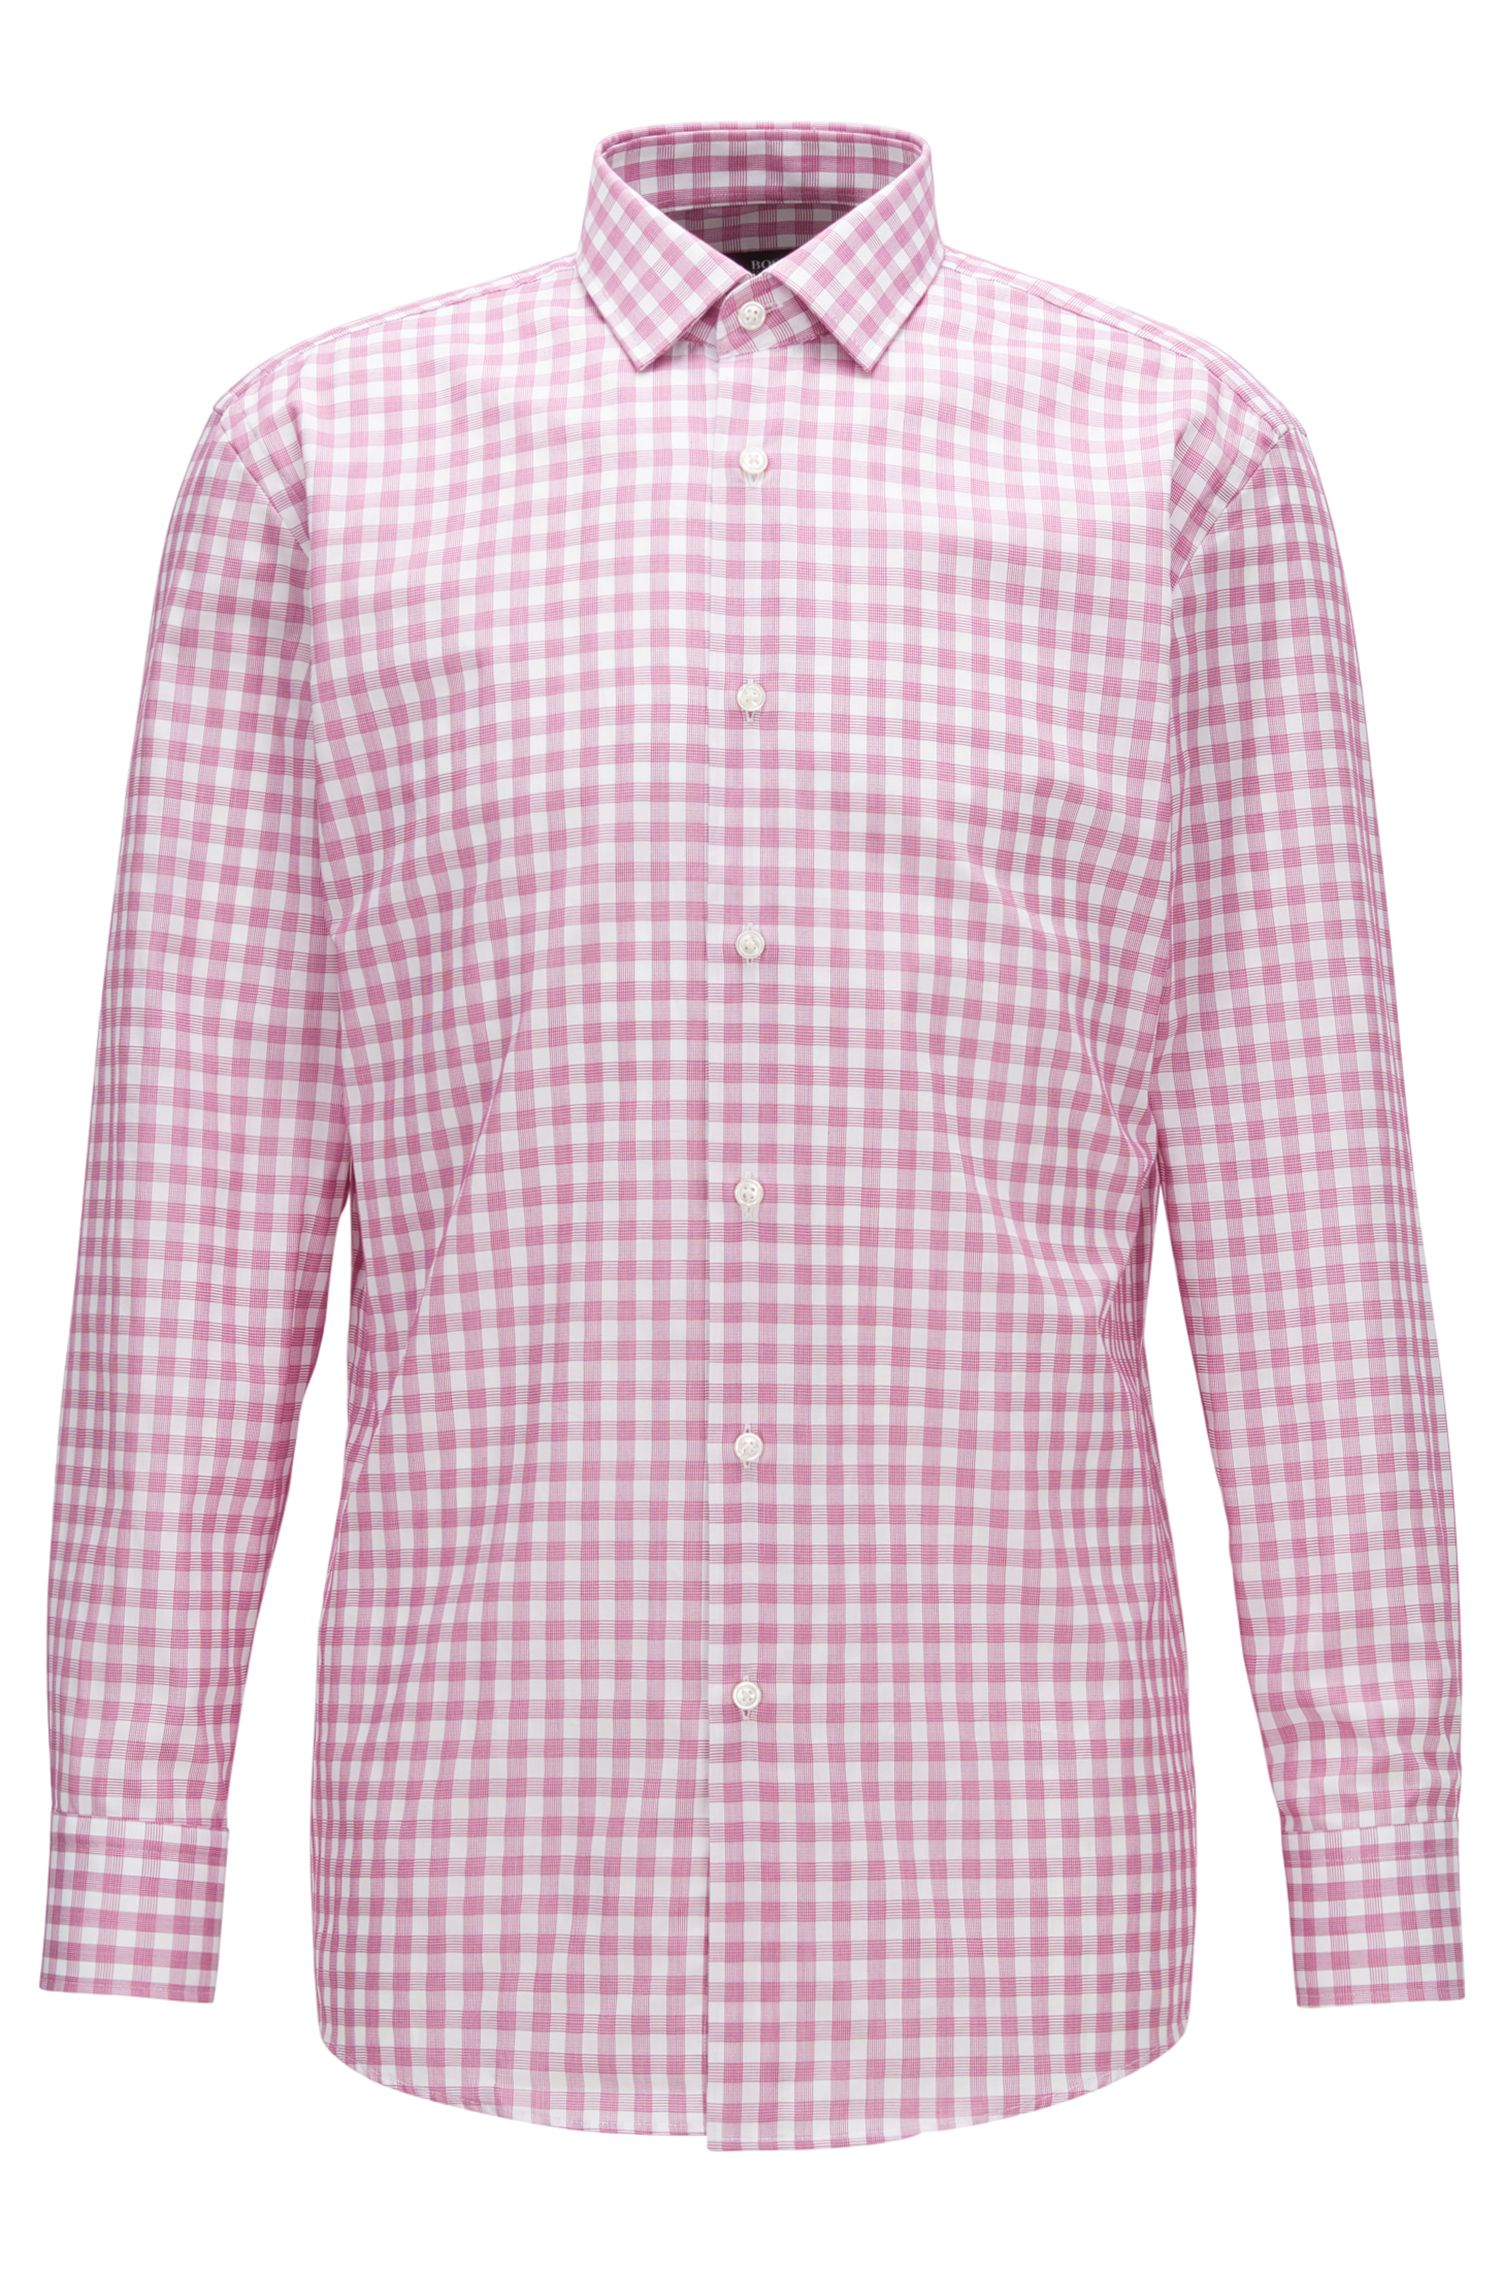 Checked Cotton Dress Shirt, Slim Fit | Marley US